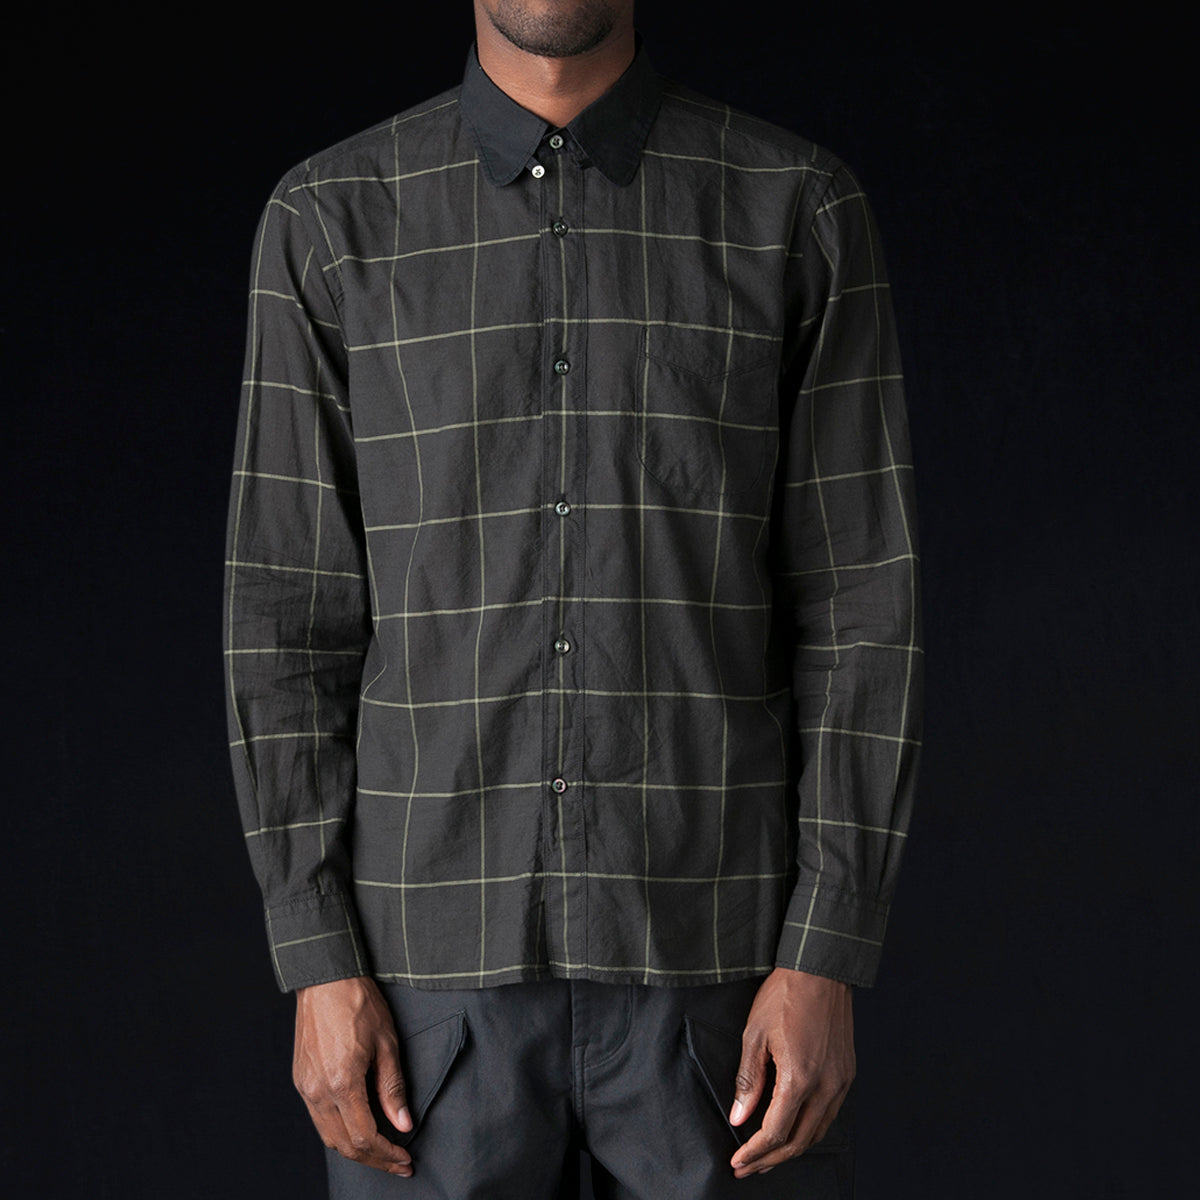 Eastlogue Tab Collar Shirt In Black Wide Check Unionmade